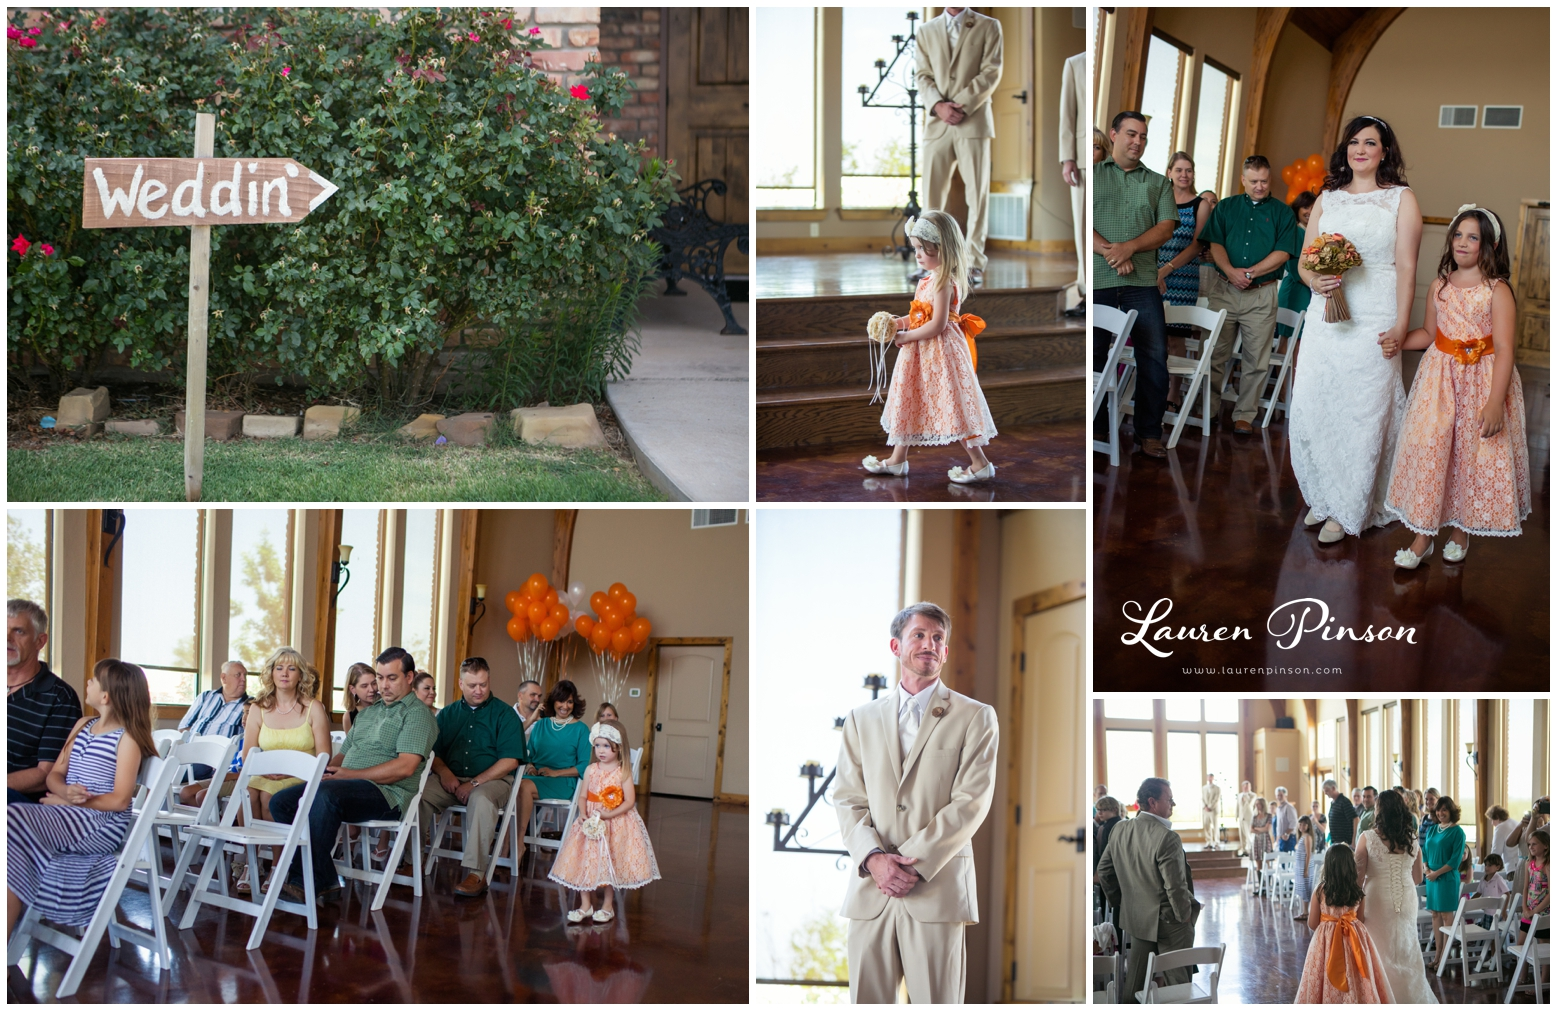 wichita-falls-coyote-ranch-resort-wedding-texas-photography-family-ceremony-balloons-rustic-lace_0327.jpg